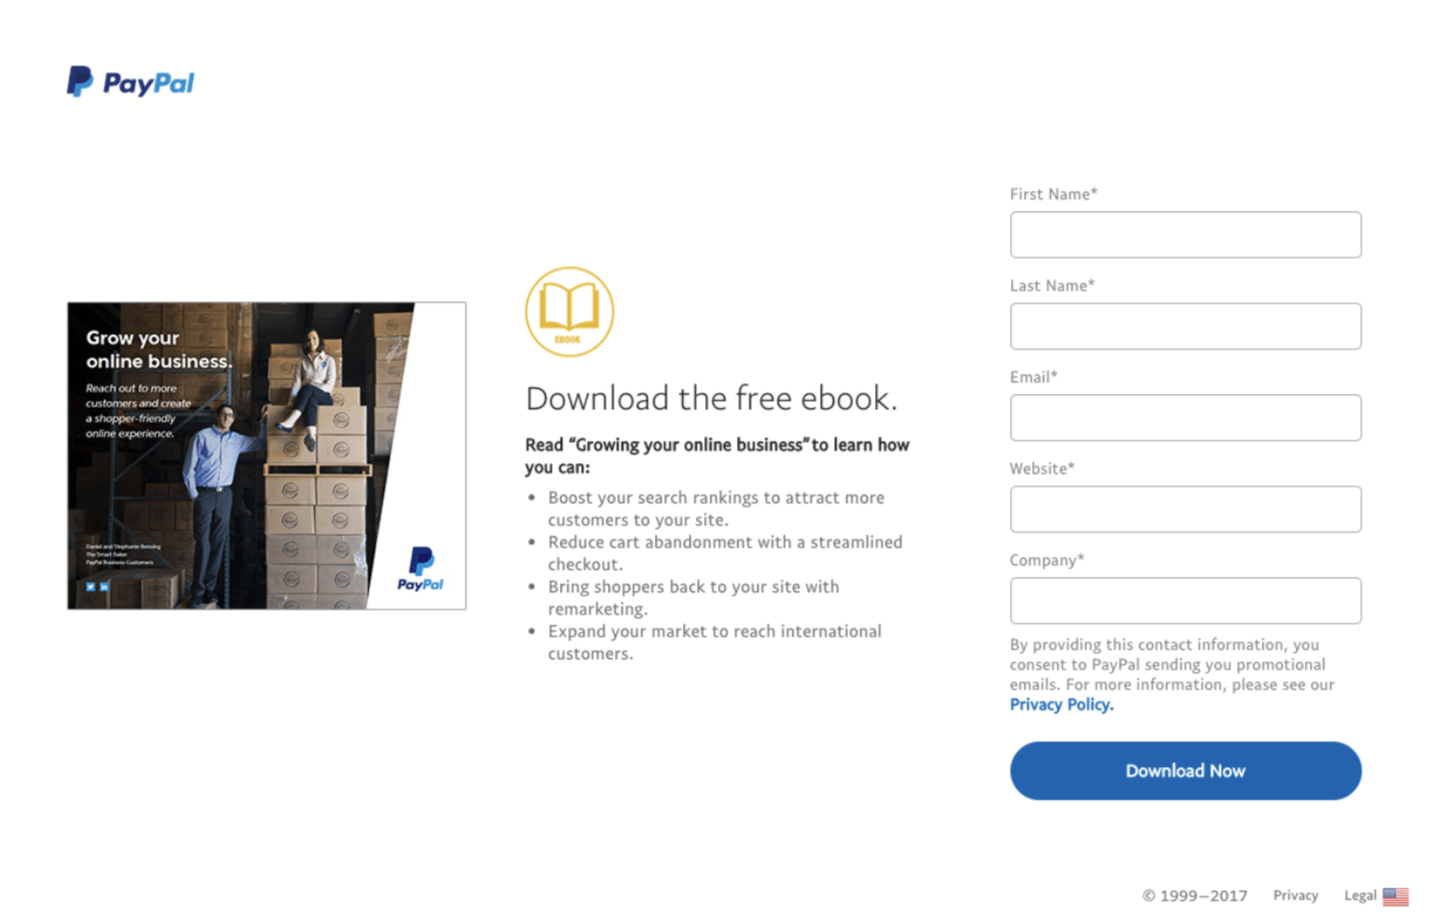 Here's one of PayPal's landing pages. Clean, easy to scan, and a form that doesn't have too many fields to fill out.